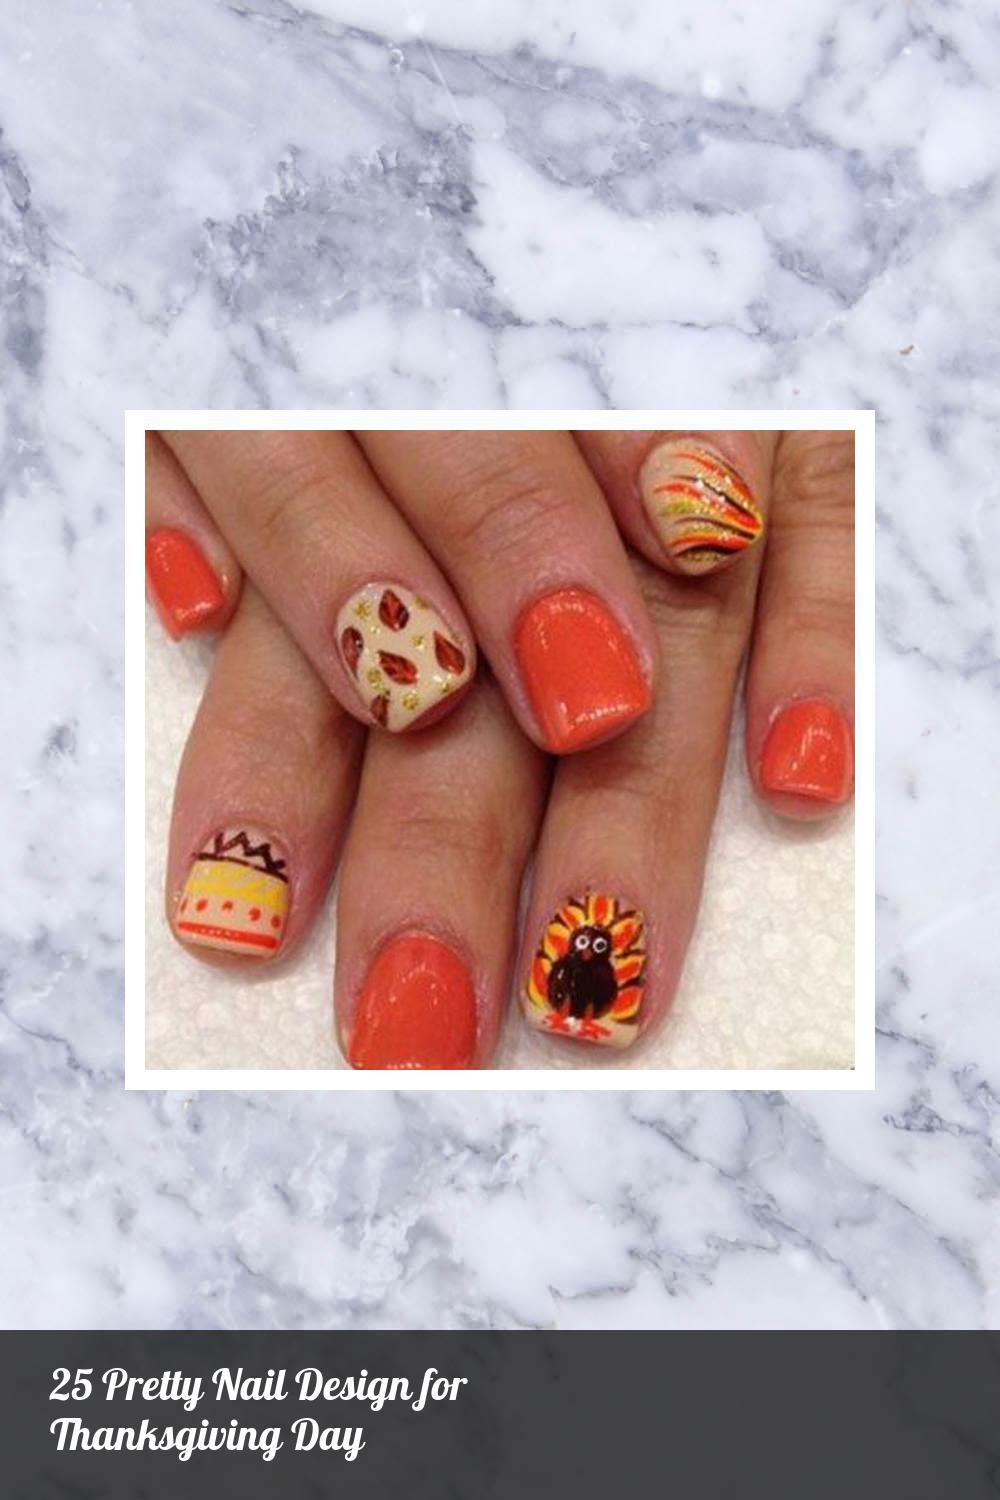 25 Pretty Nail Design for Thanksgiving Day 6